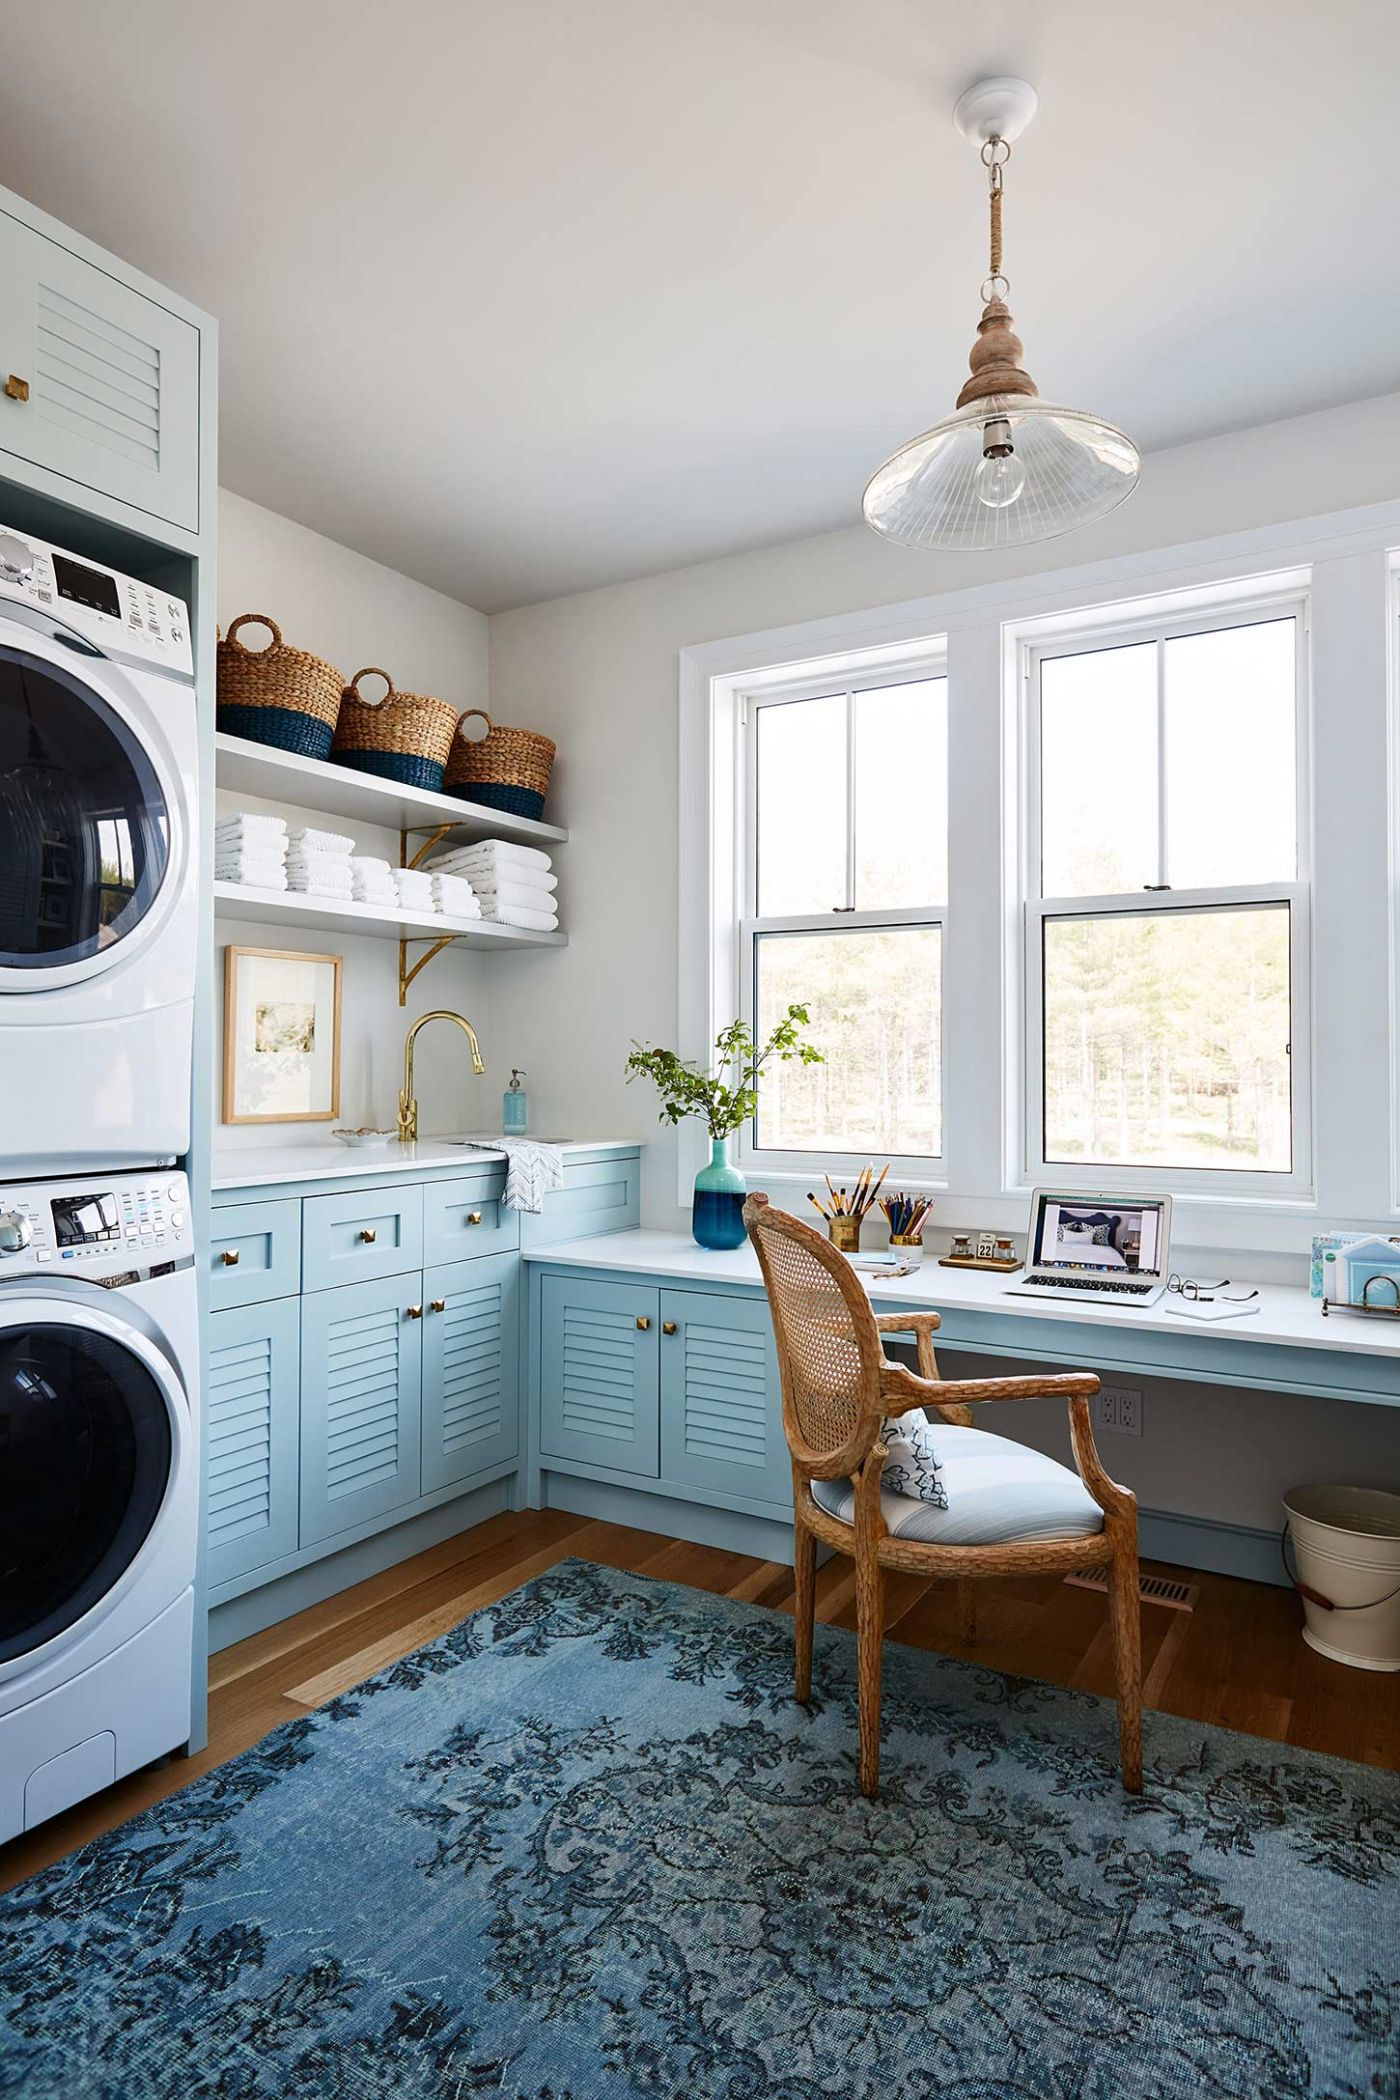 Built in washer and dryer in a baby blue color